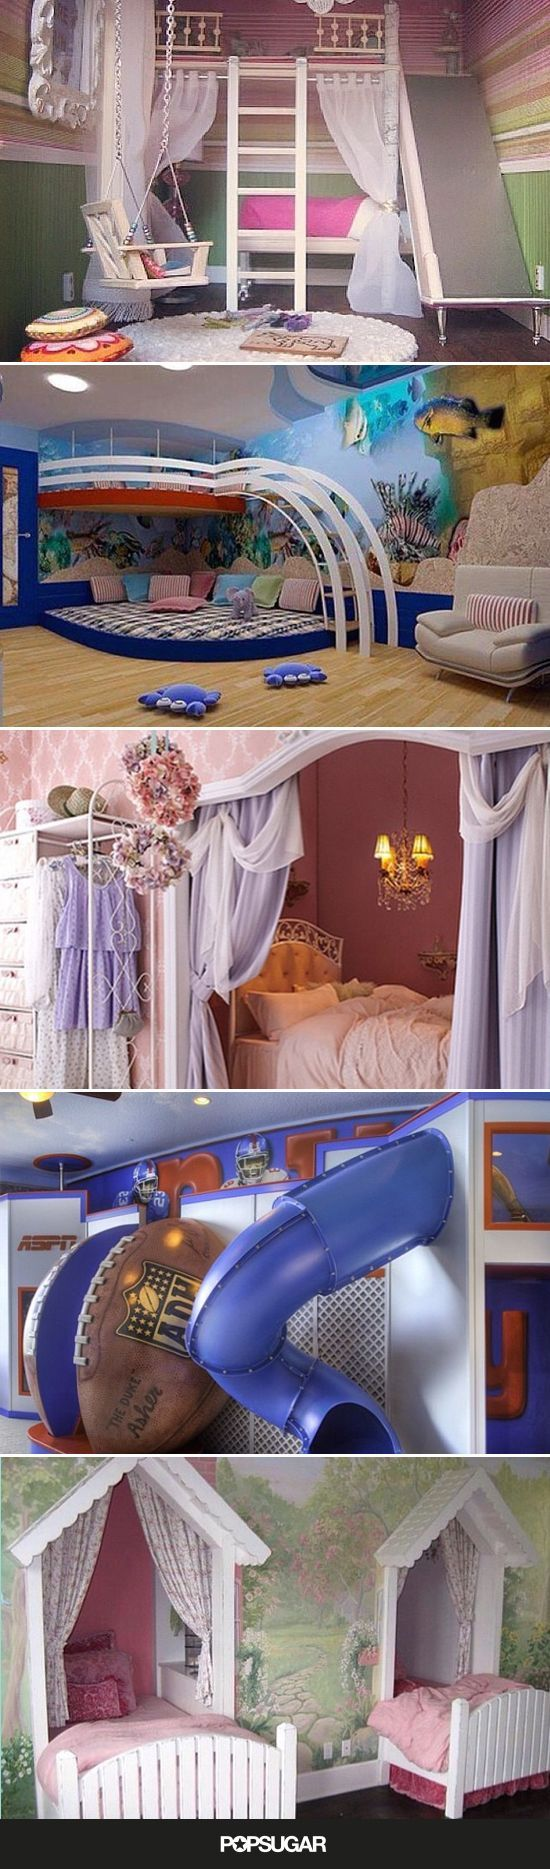 These 17 crazy-cool bedrooms will give you inspiration for days if you're looking to amp up your son or daughter's room, or if you're just looking for some quirky ideas.